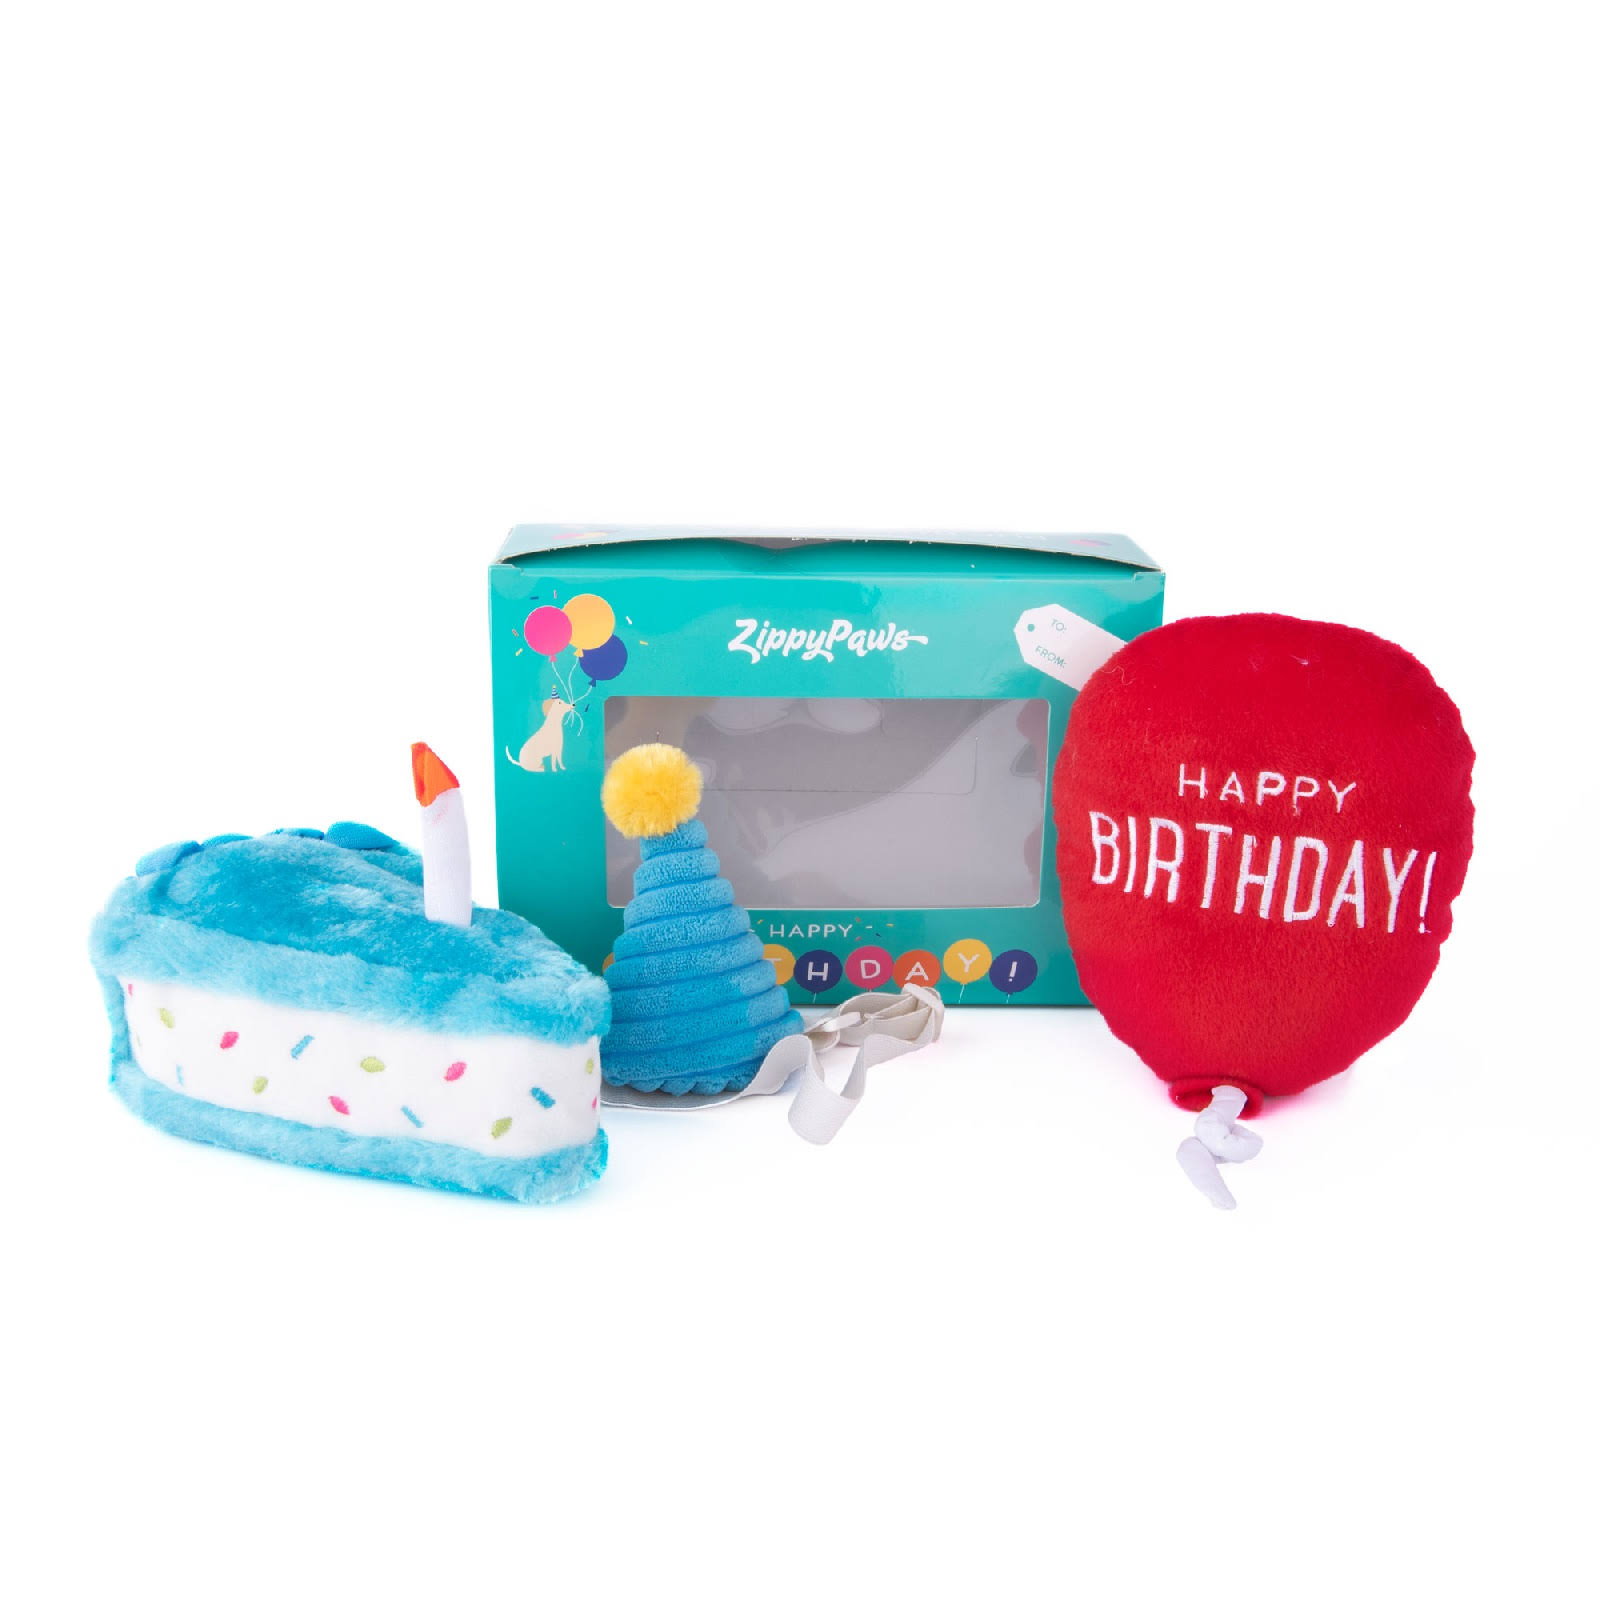 ZippyPaws Pup Birthday Box